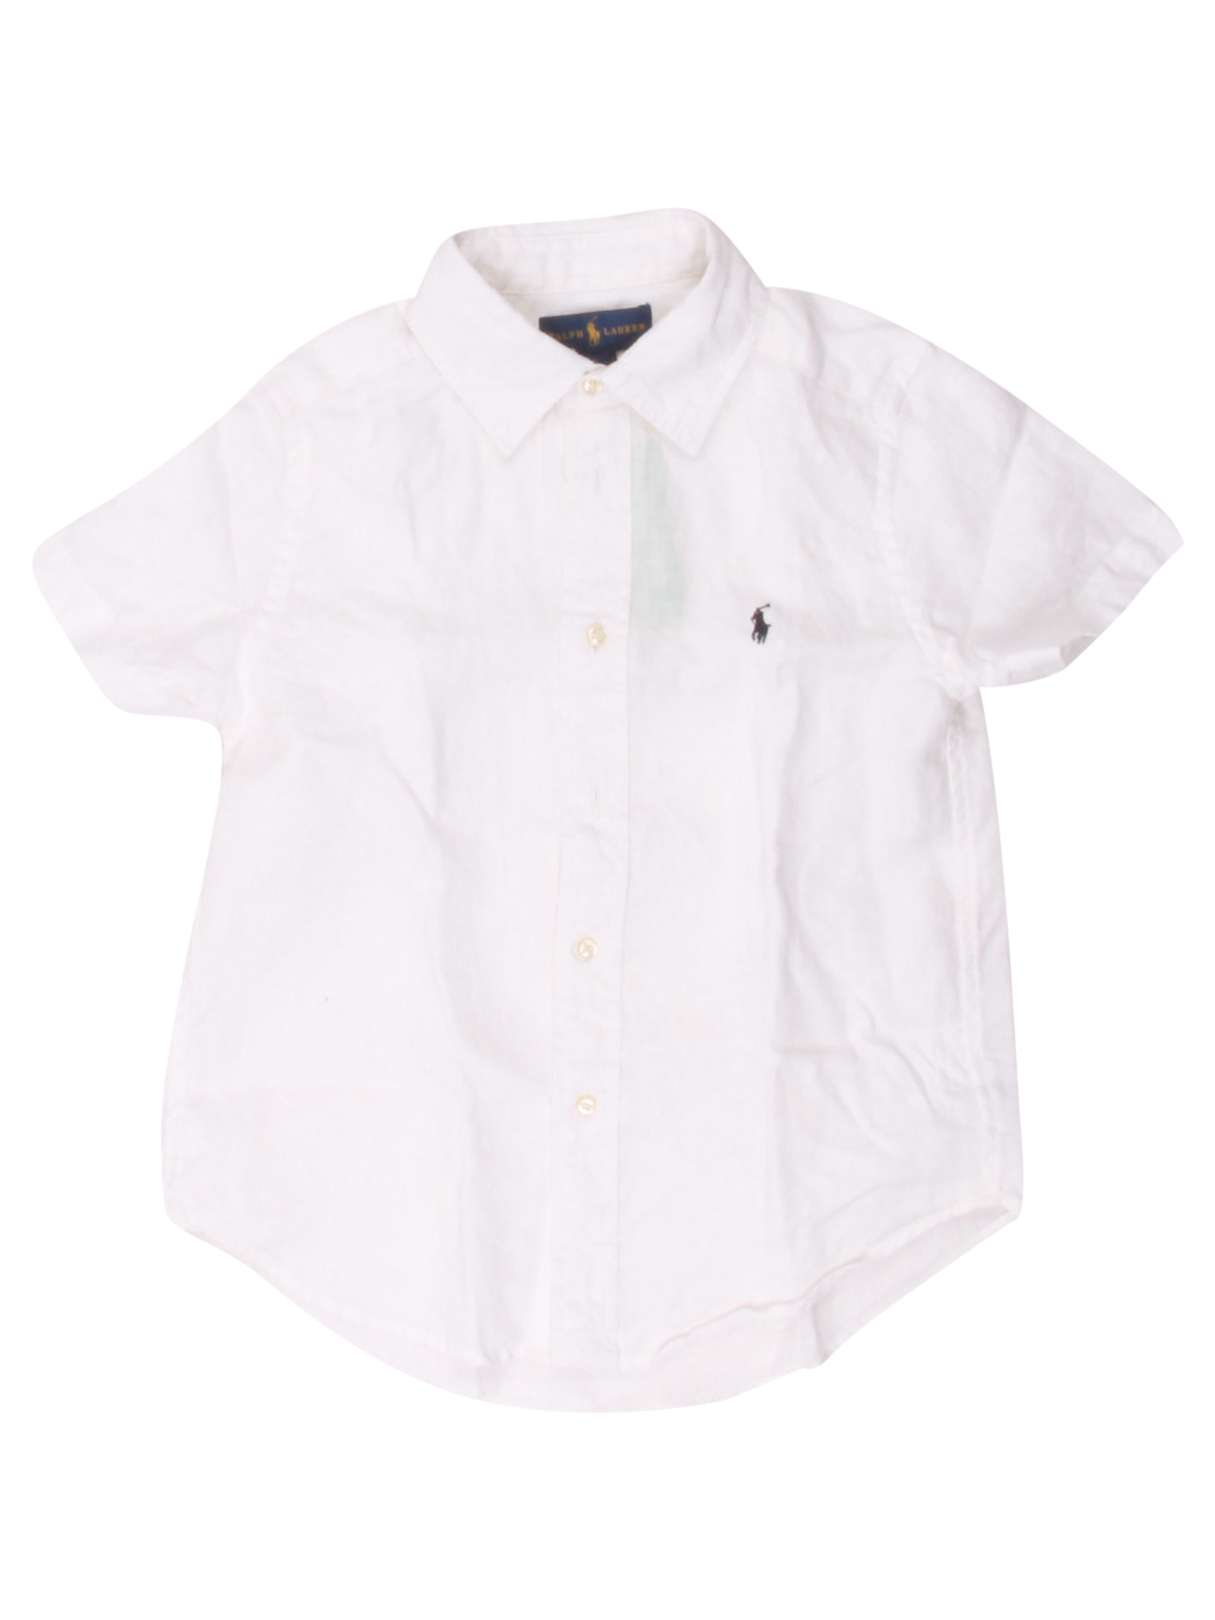 new product bde10 87046 Camicia Polo Ralph Lauren bianco | Armadio Verde